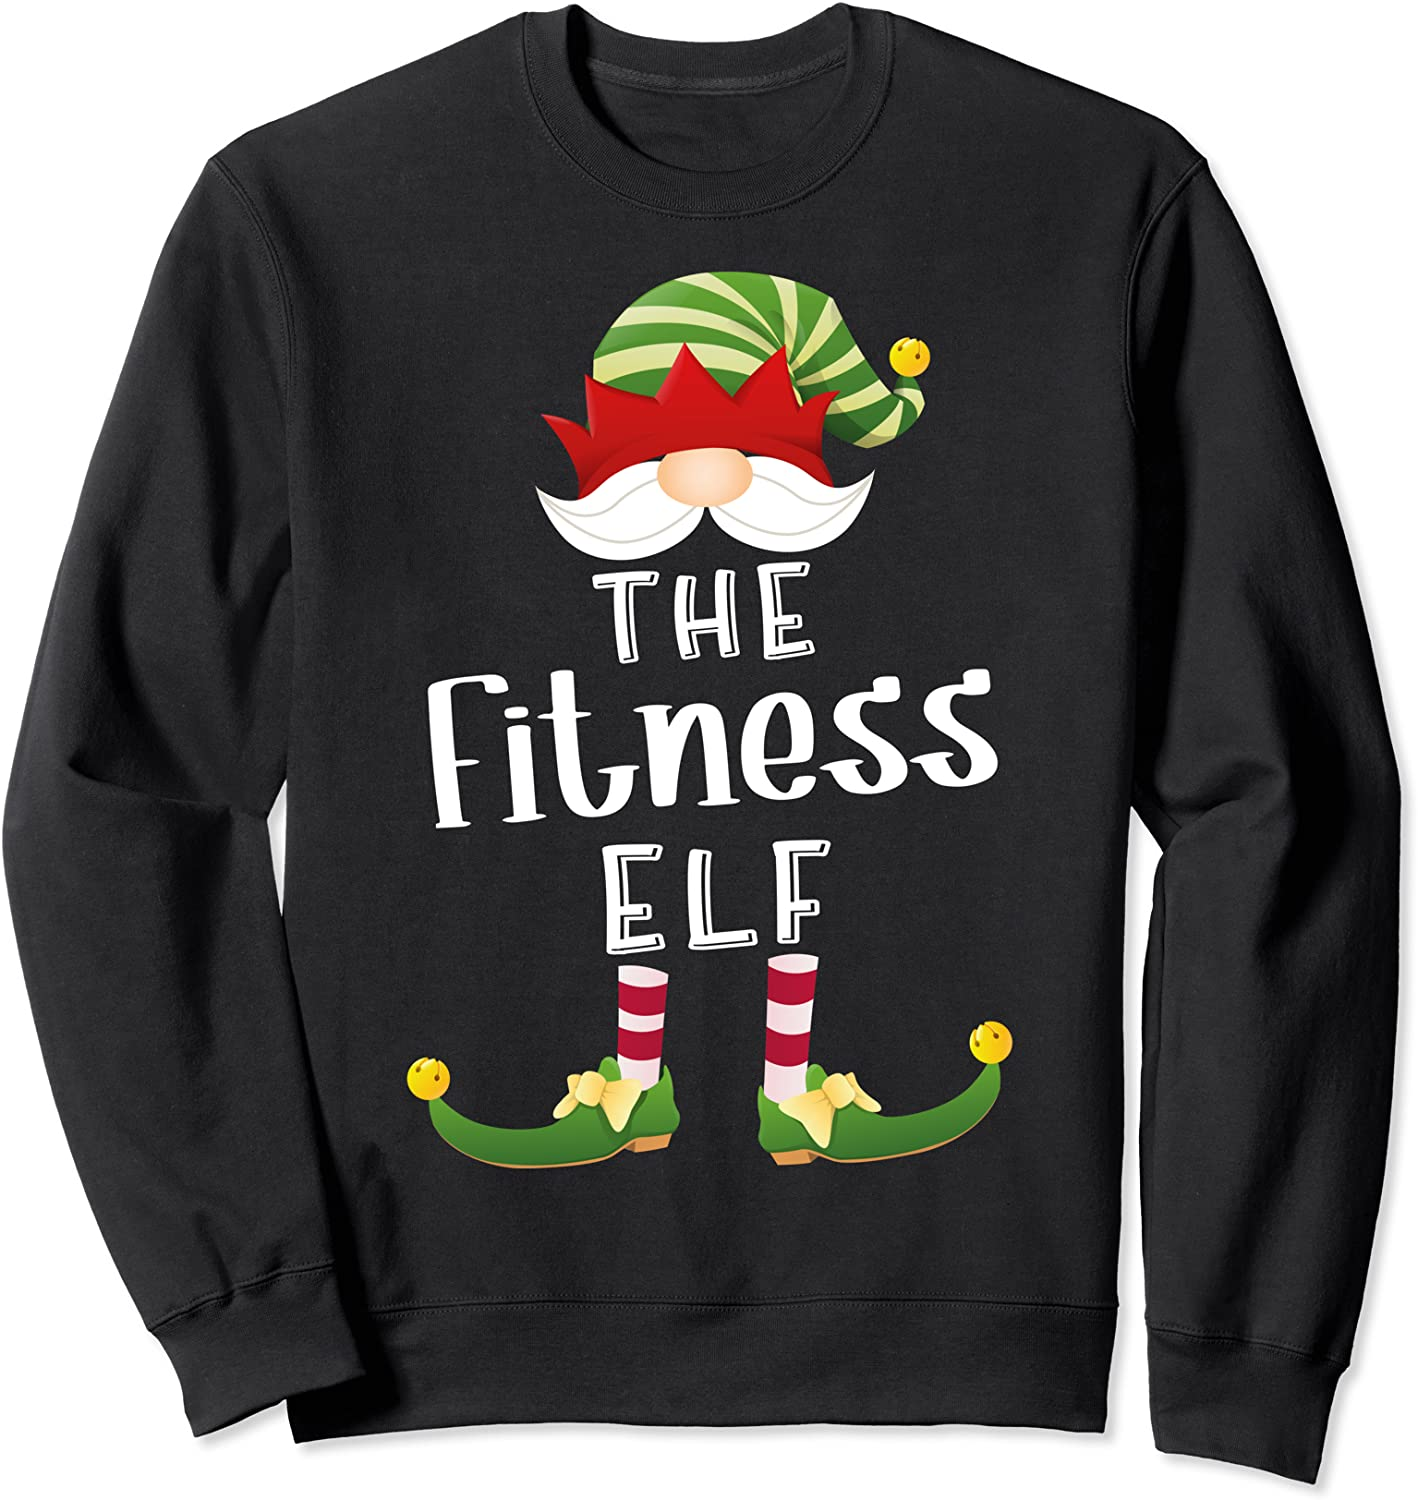 Fitness Elf Group Christmas Credence Max 86% OFF Party Sweatshirt Funny Pajama